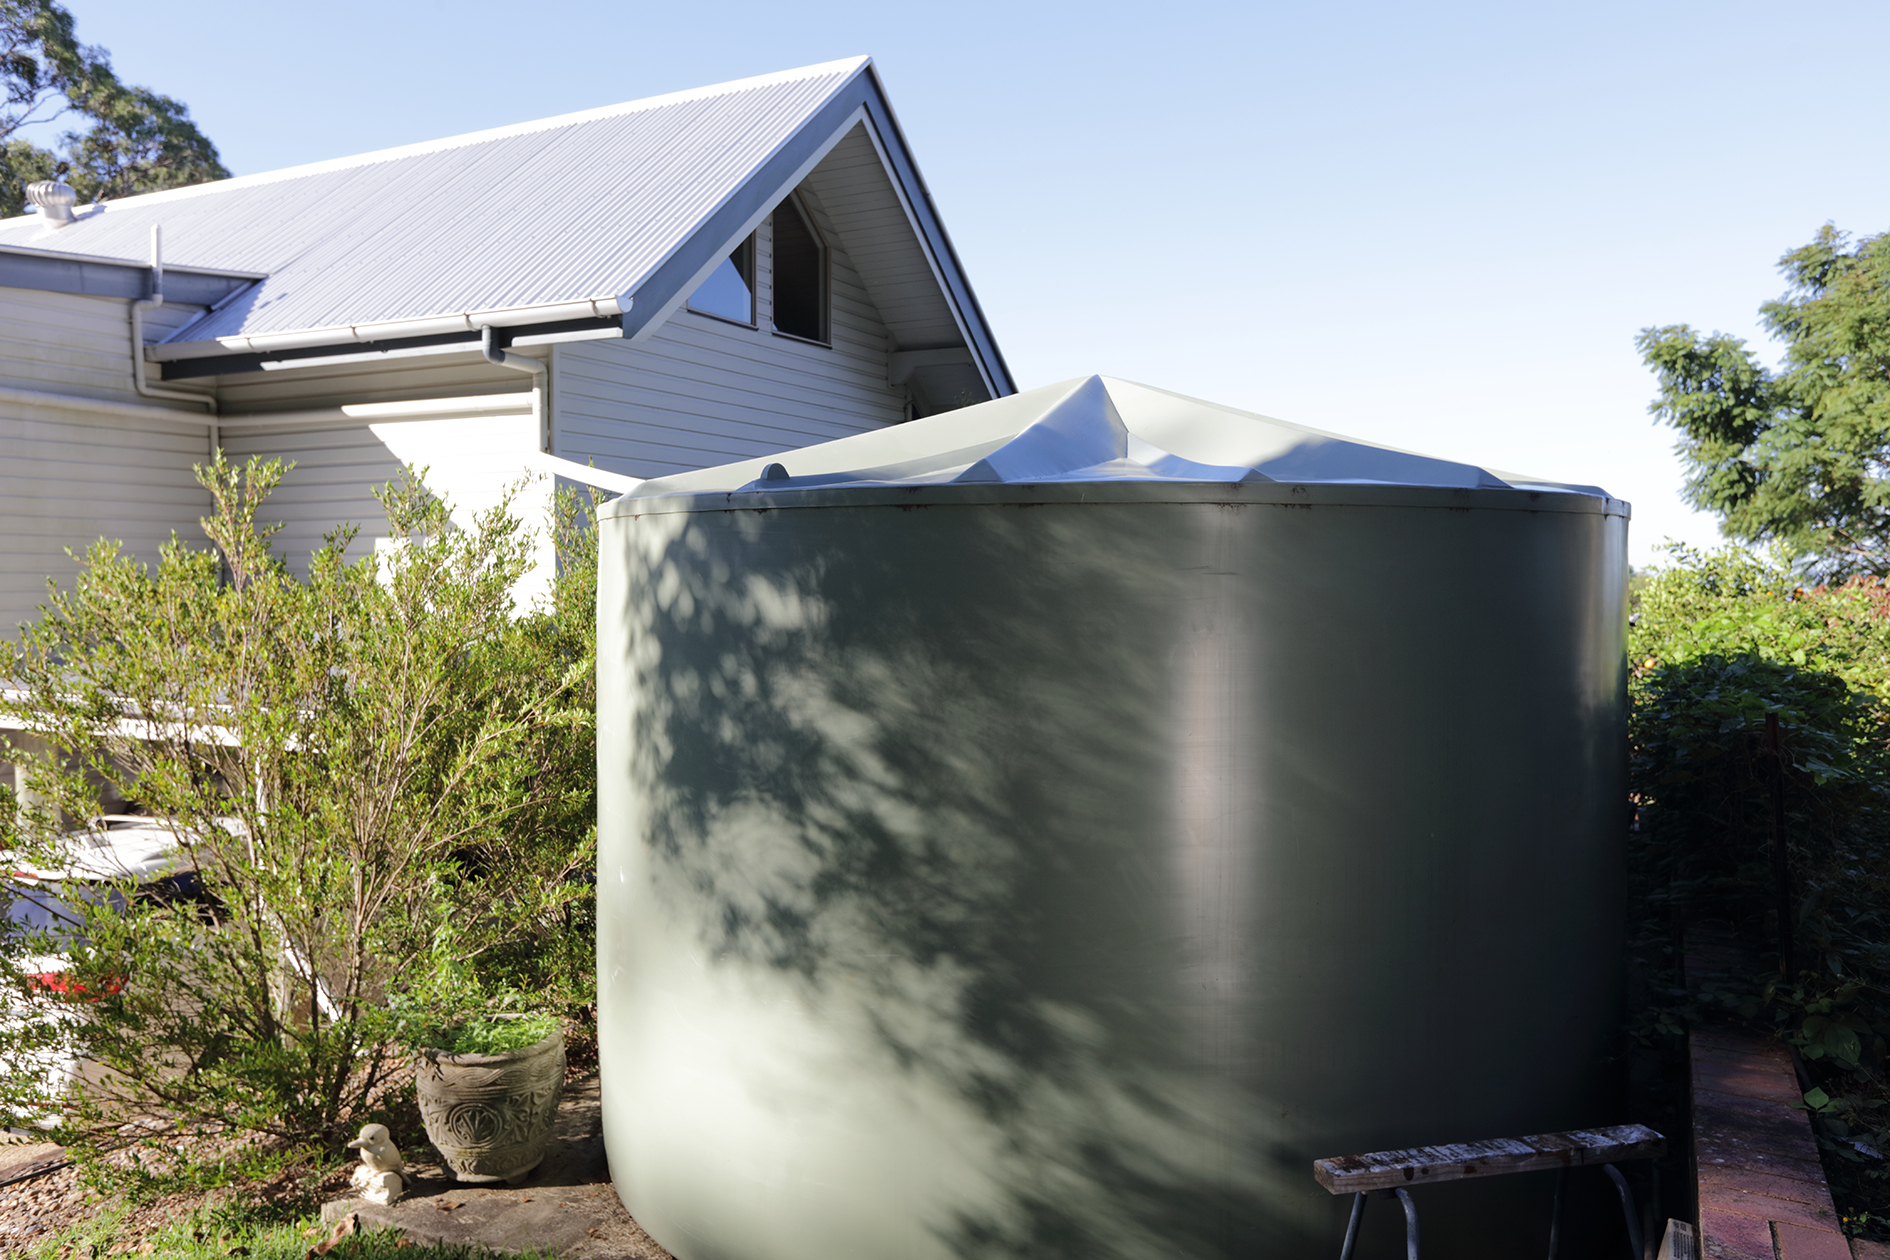 Water tank and house on residential property